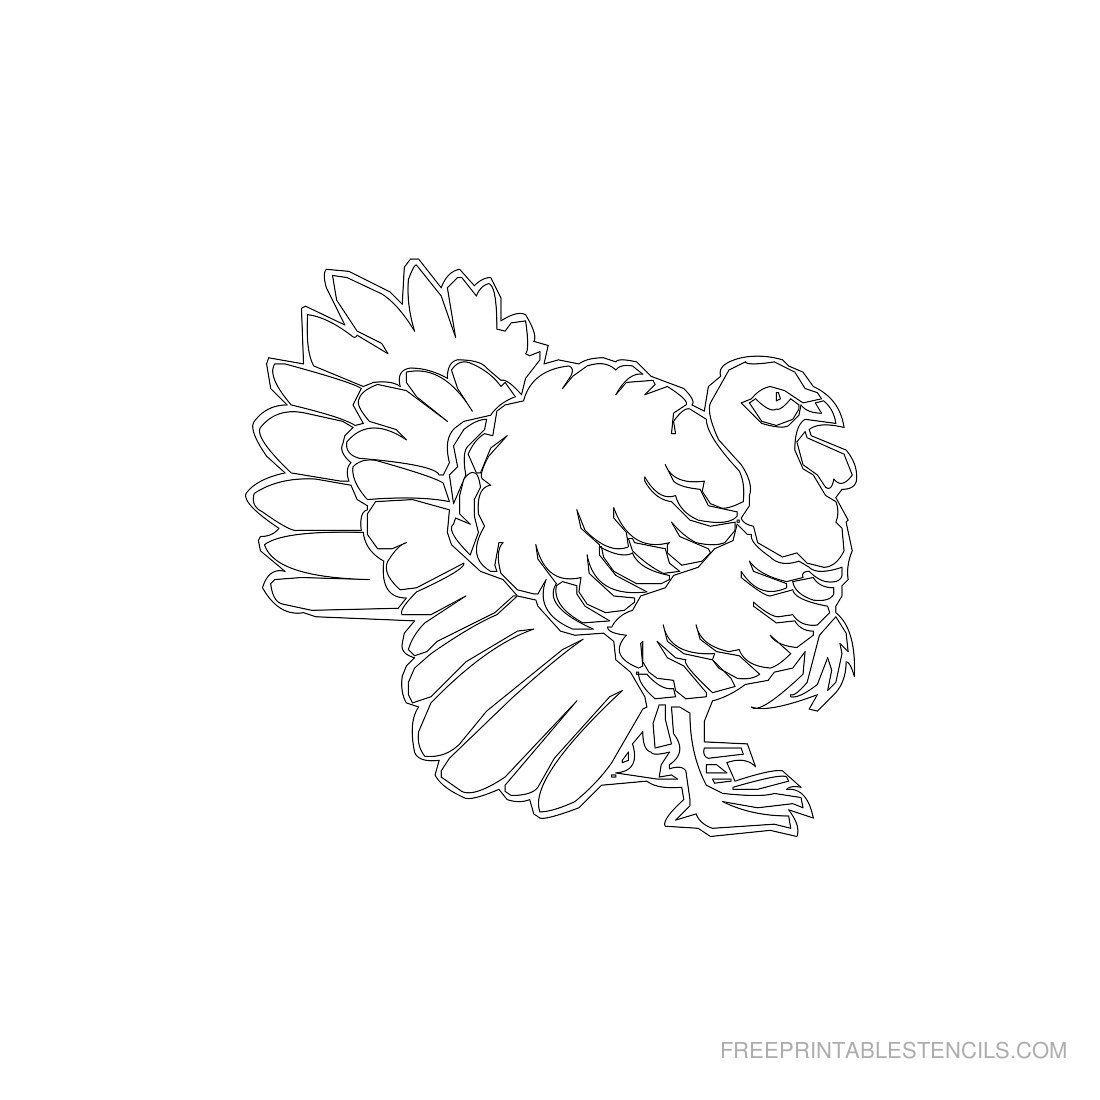 Free Printable Animal Stencil Rooster